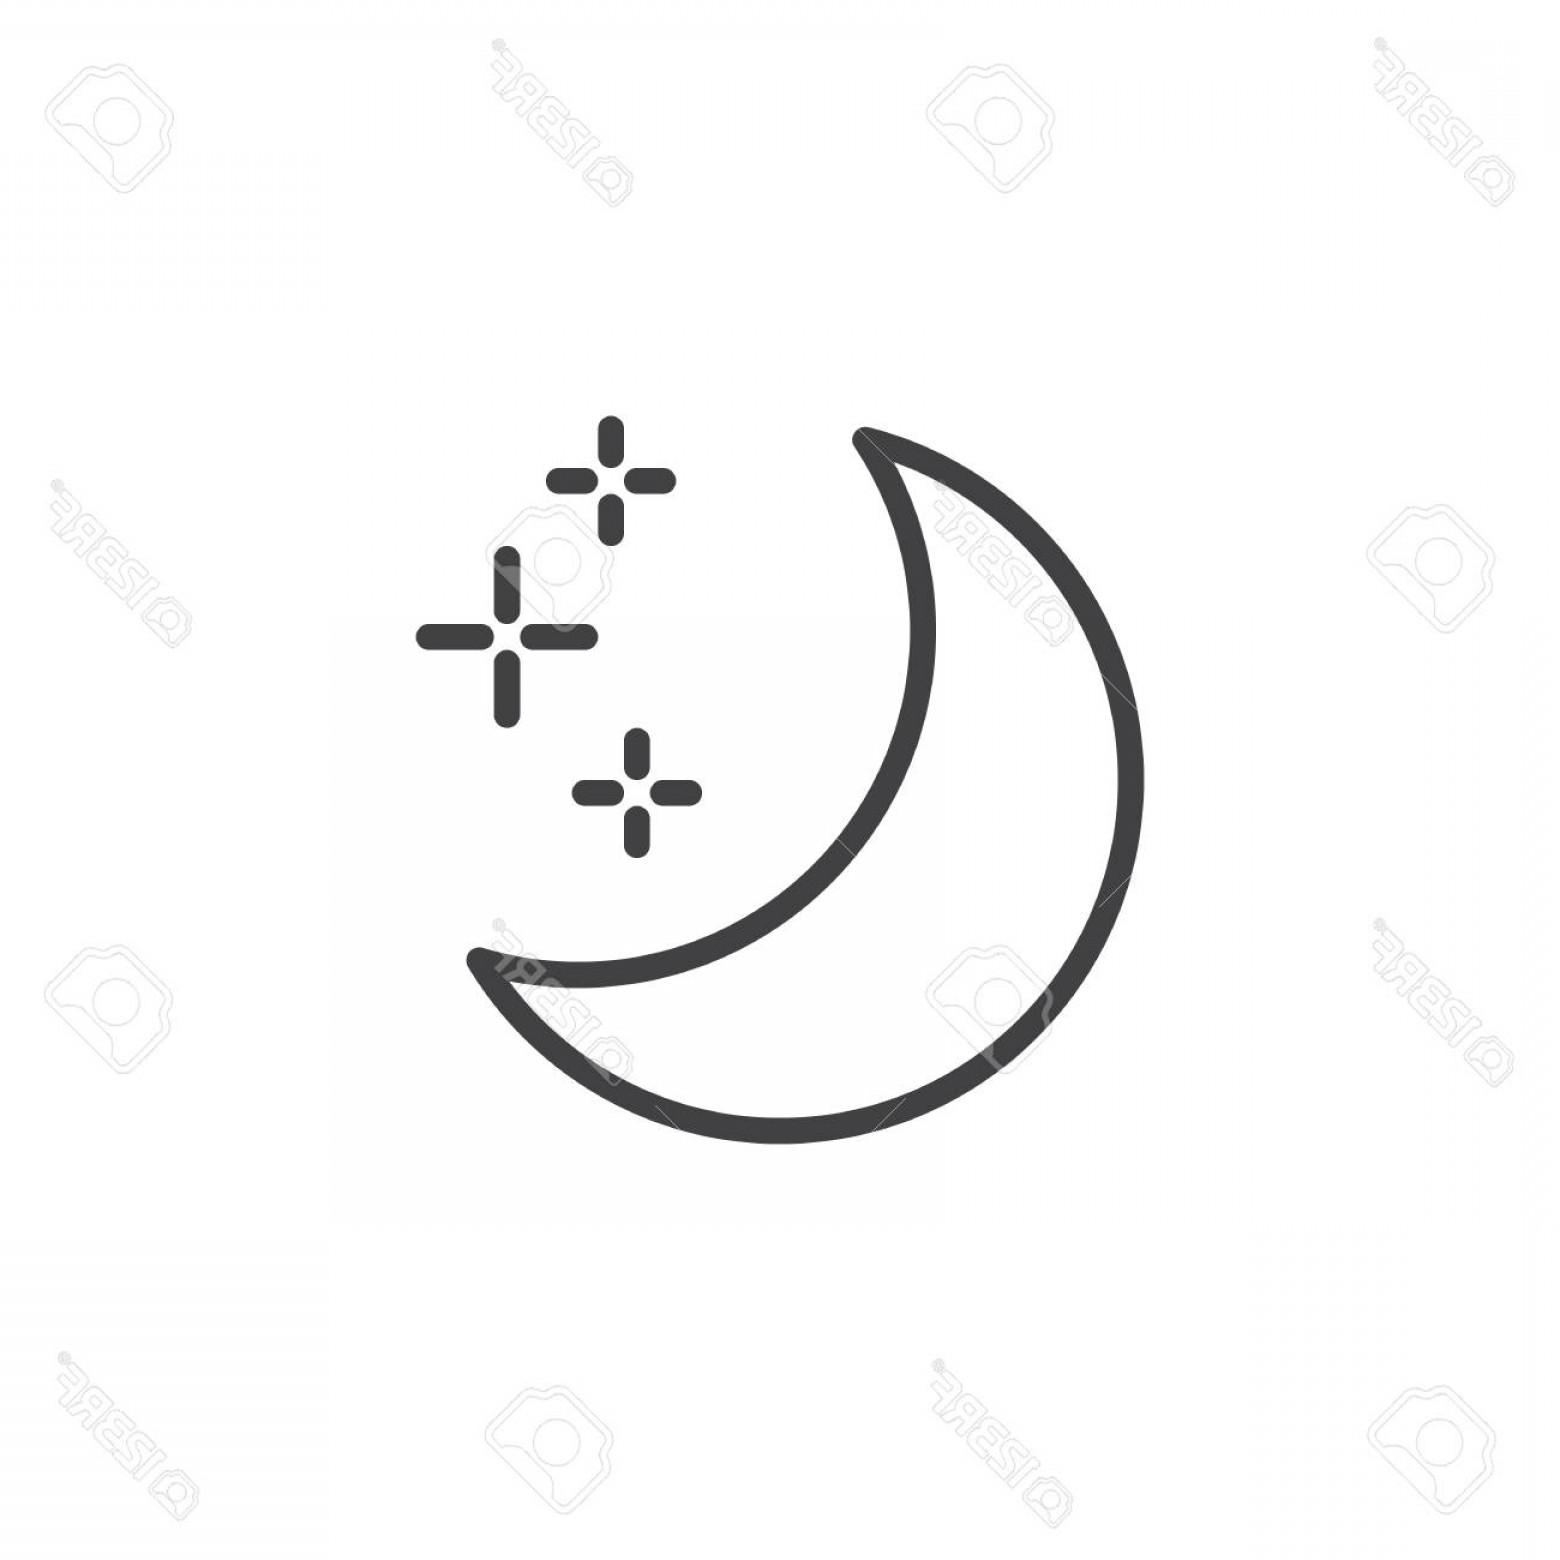 Simple Moon Vector Art: Photostock Vector Crescent Moon Outline Icon Linear Style Sign For Mobile Concept And Web Design Moon And Stars Simple